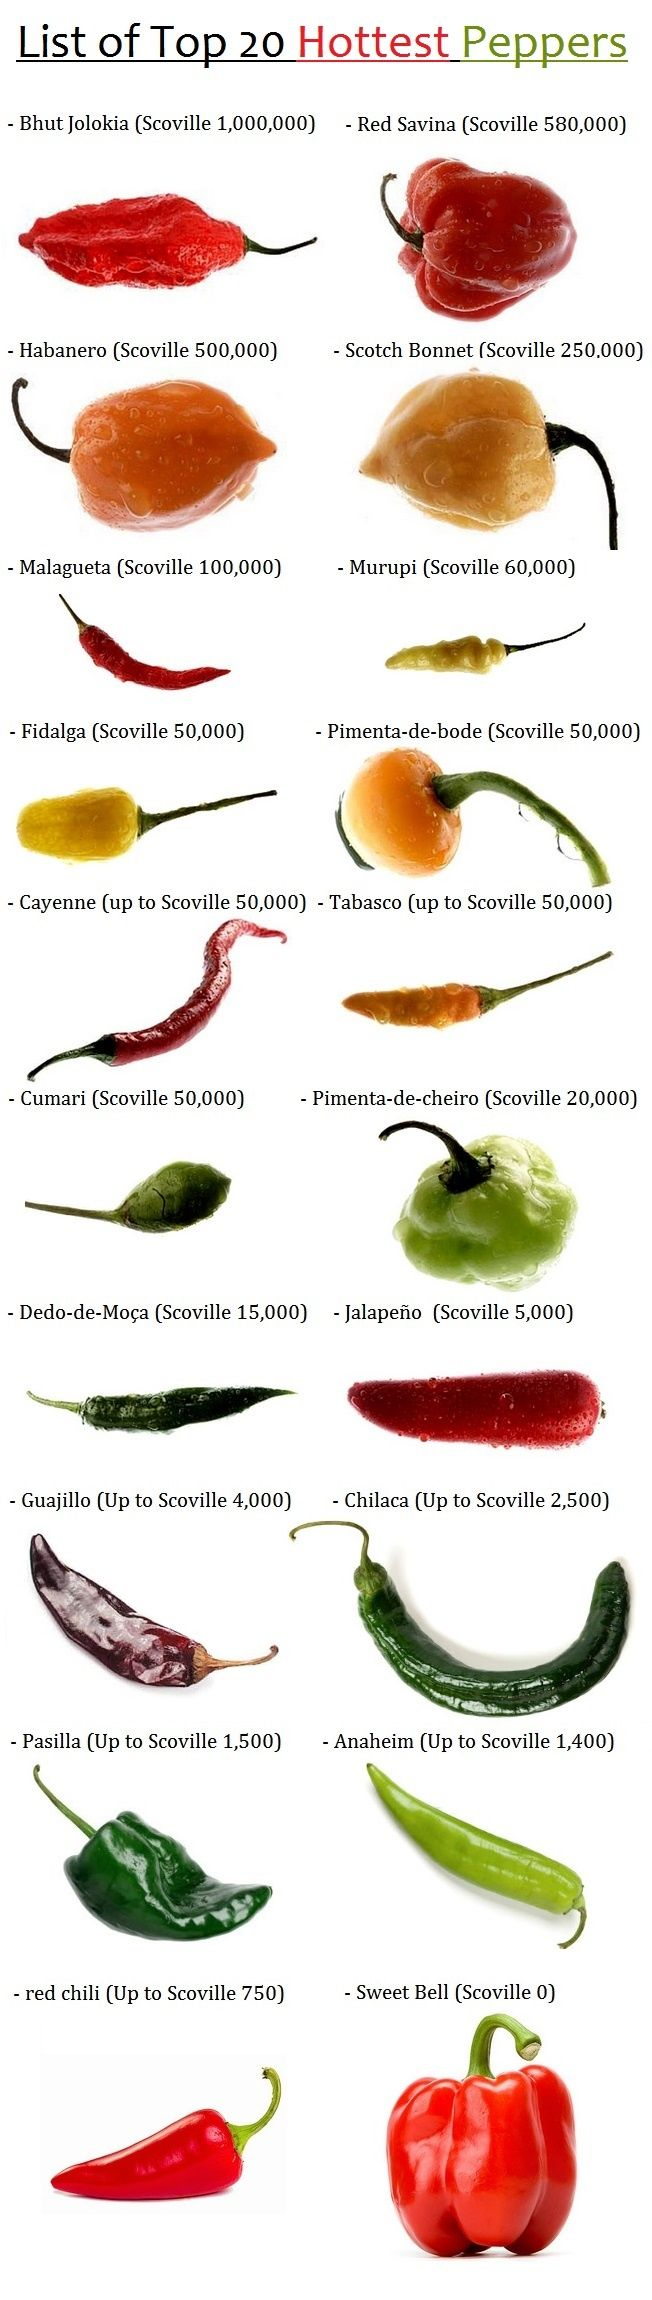 Alternative Gardning: List of Top 20 Hottest Peppers